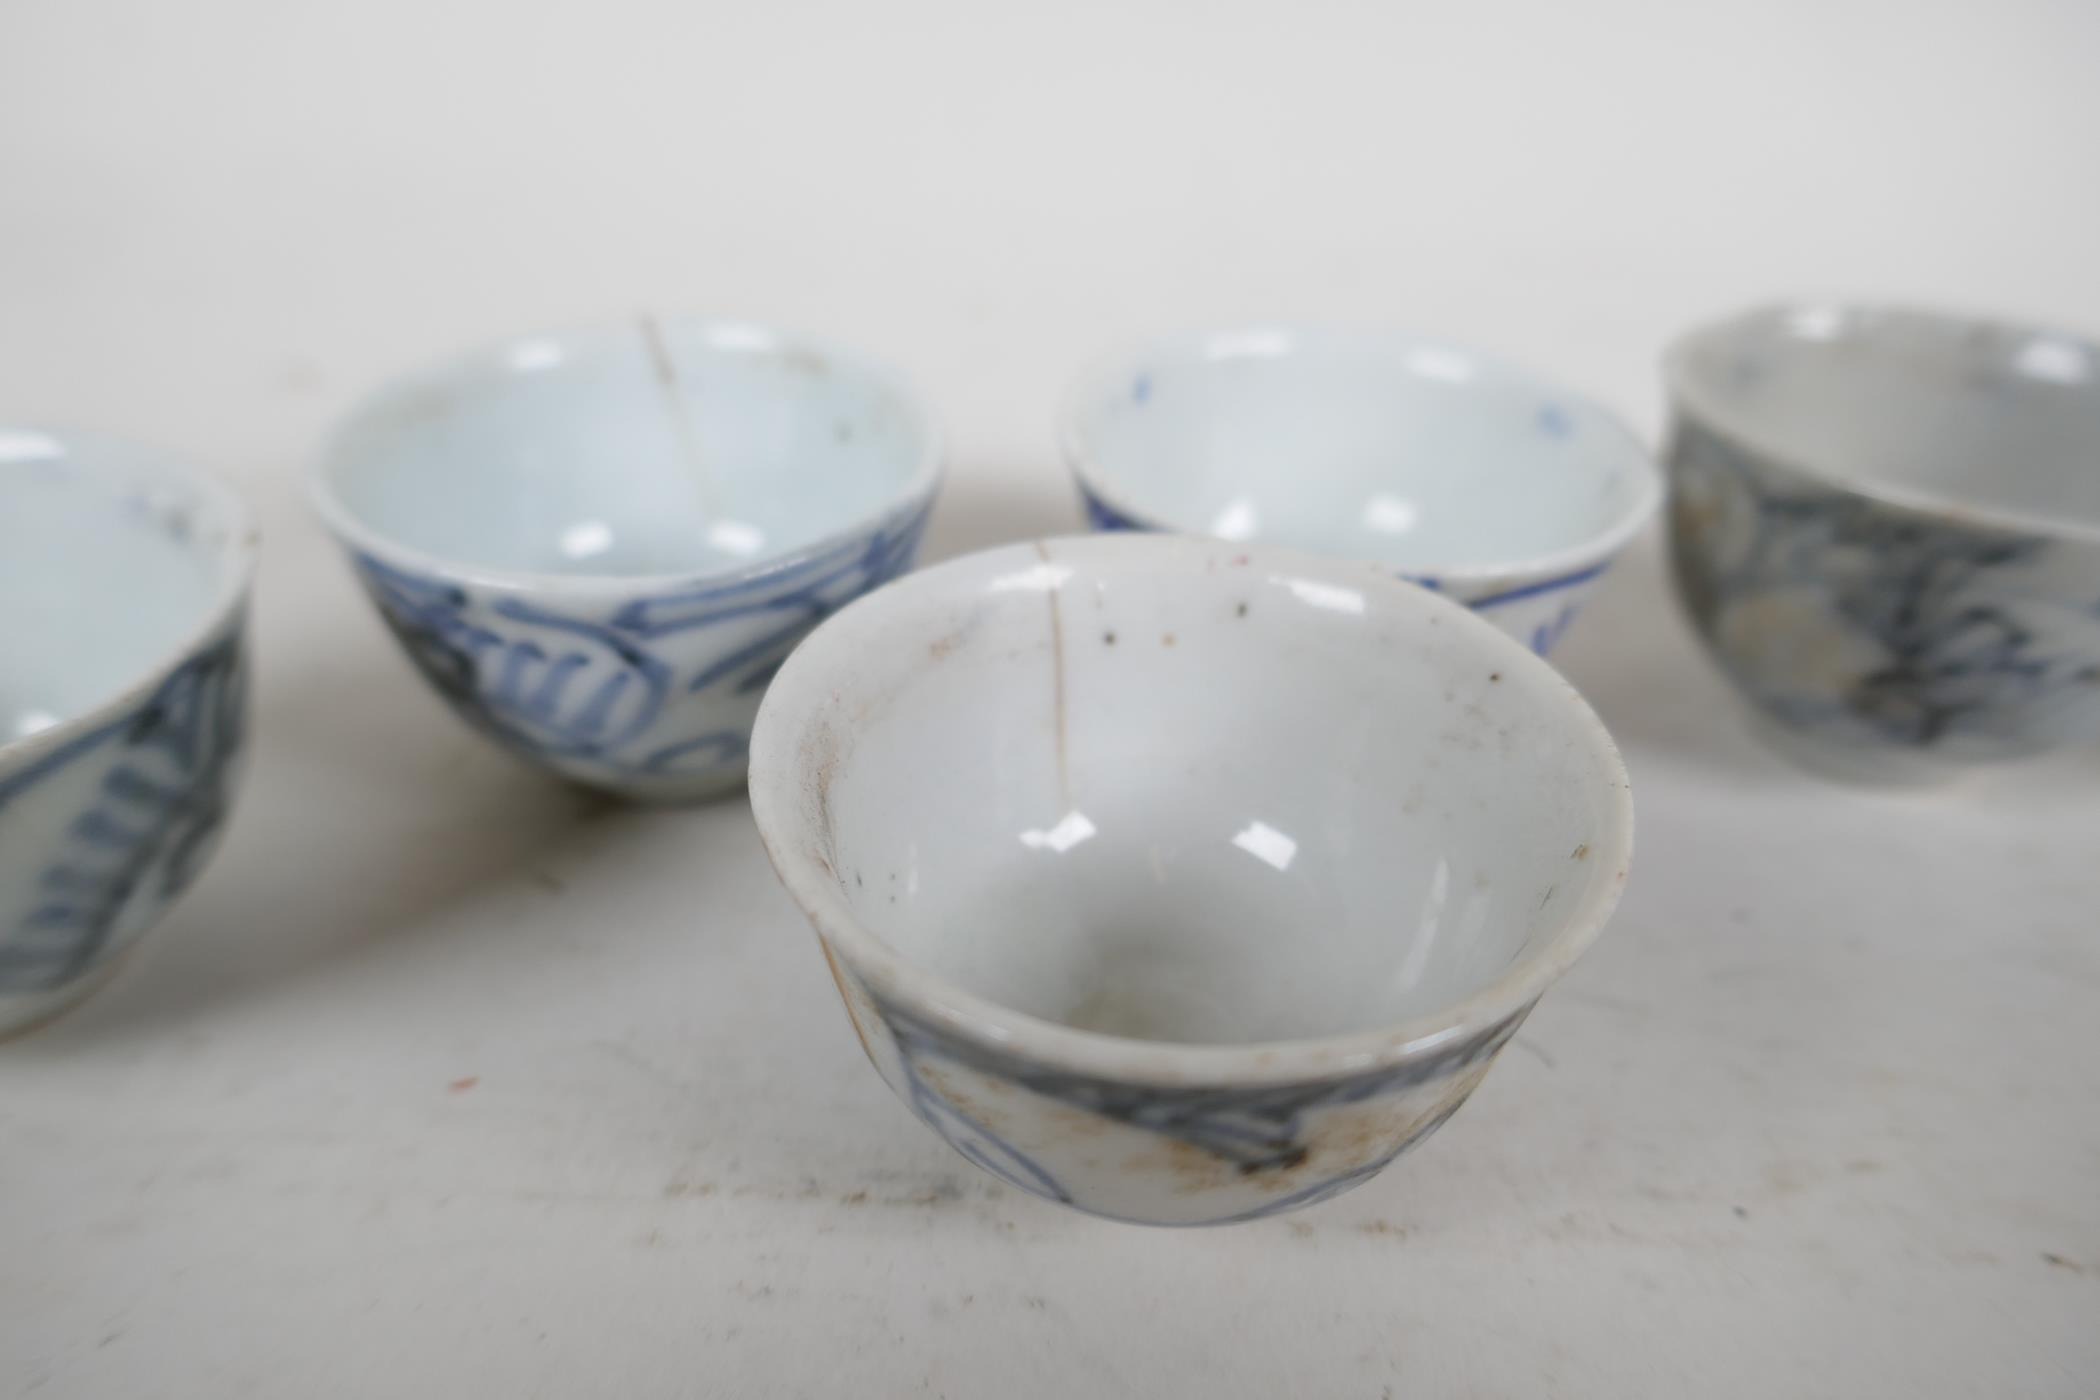 """Six Chinese antique blue and white wine/tea cups, 1½"""" diameter - Image 2 of 3"""